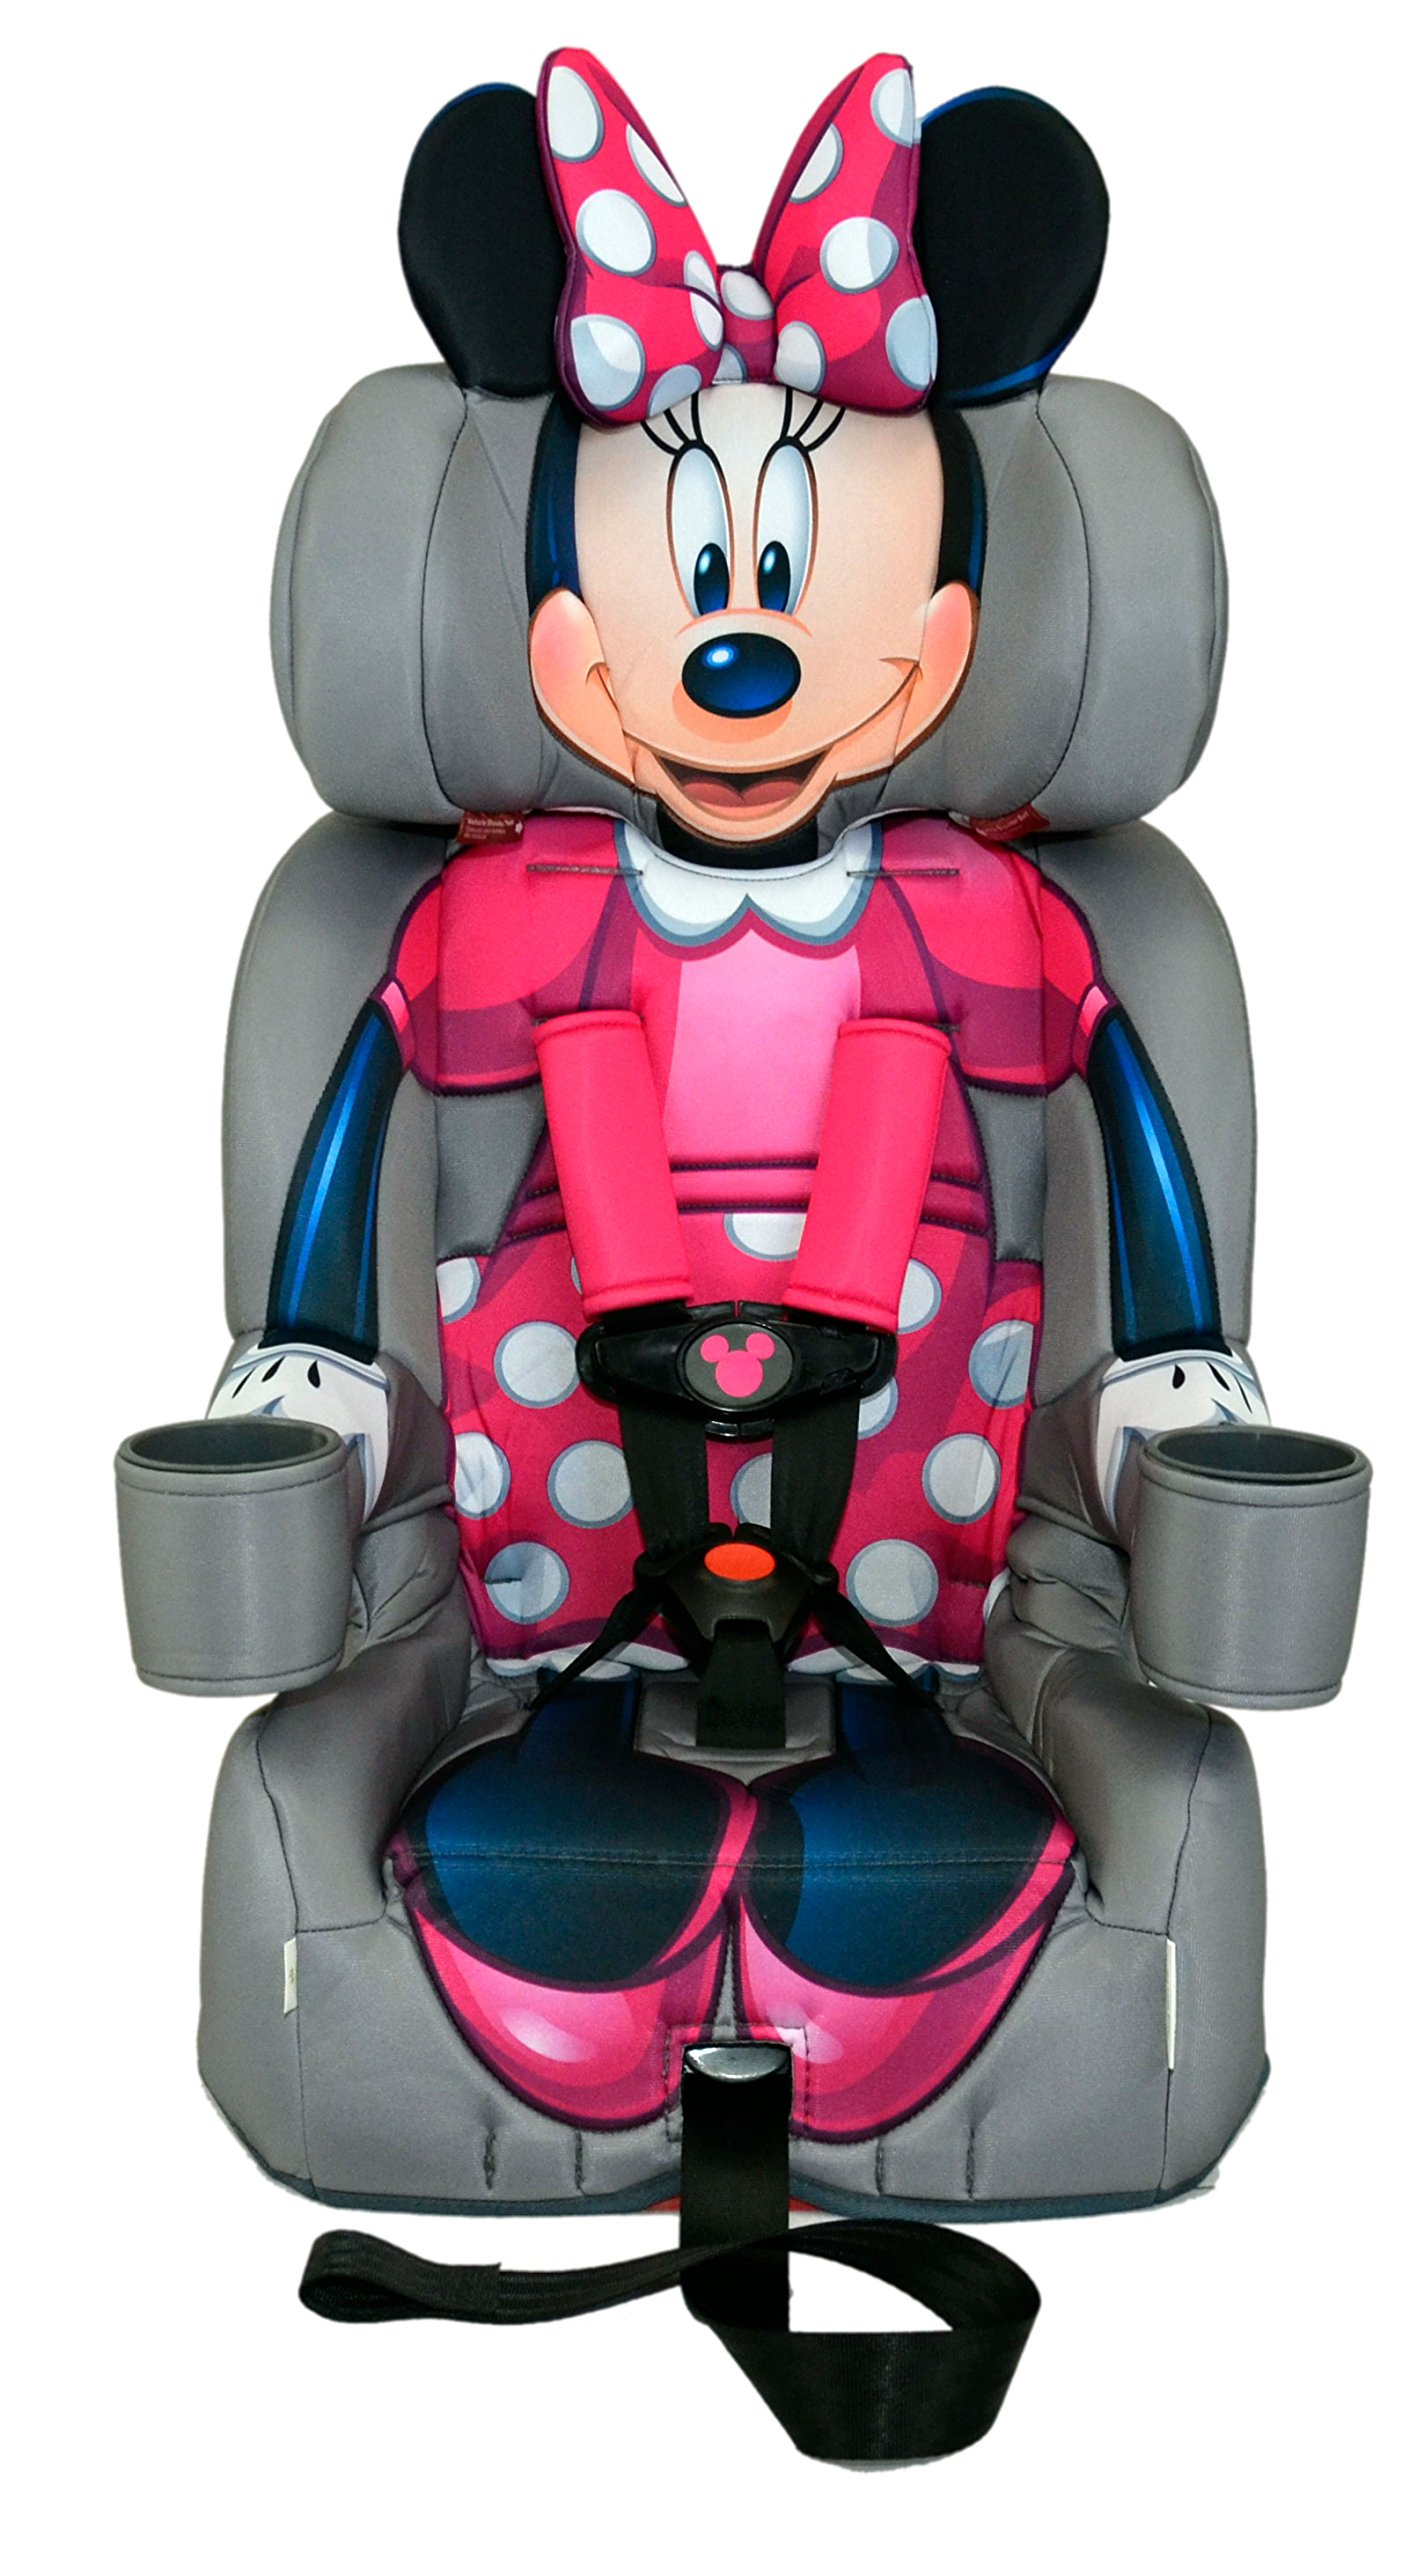 kidsembrace disney mickey mouse combination harness booster car seat baby. Black Bedroom Furniture Sets. Home Design Ideas